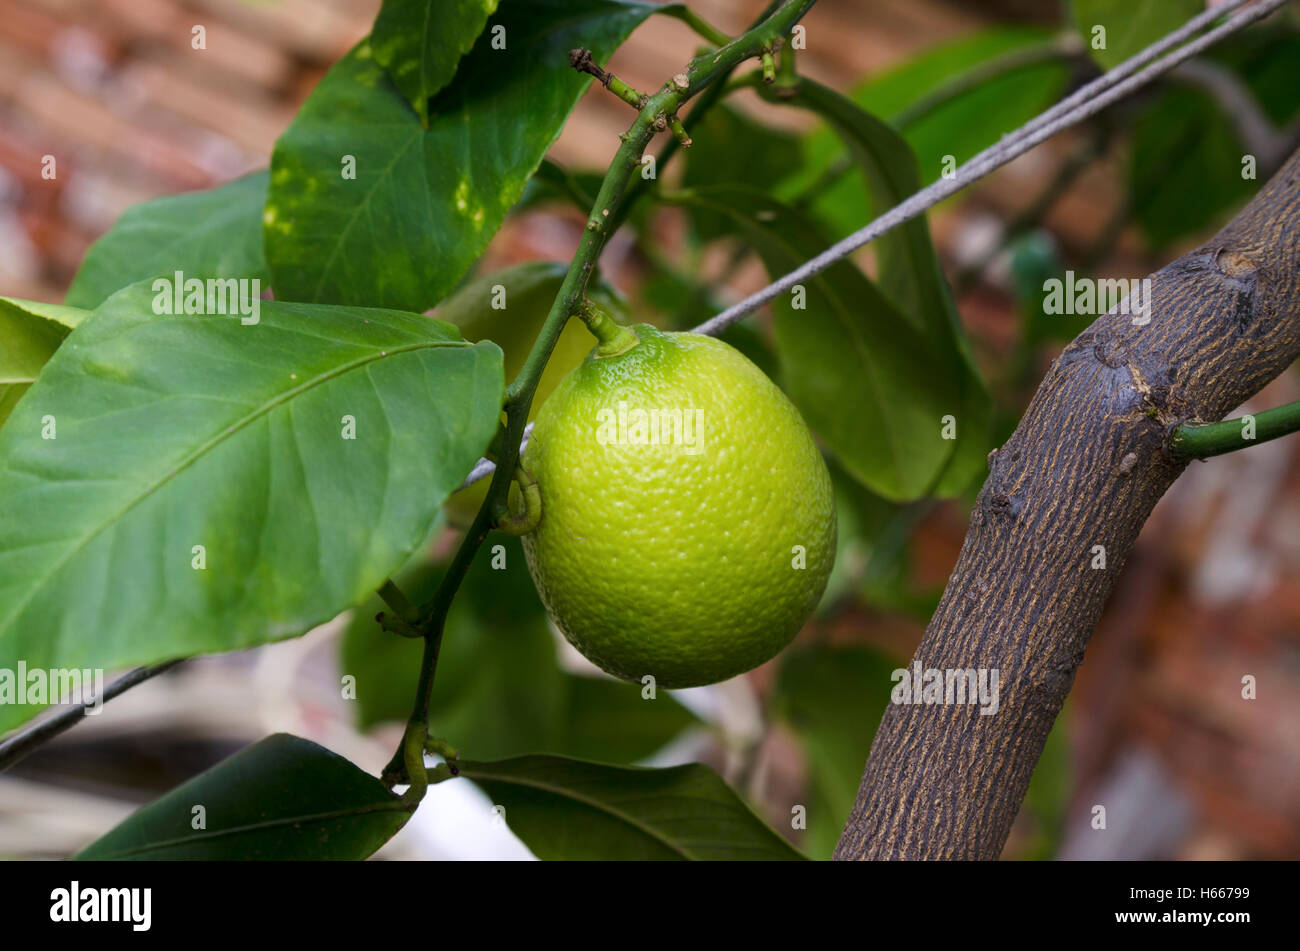 Home lemon tree - Stock Image